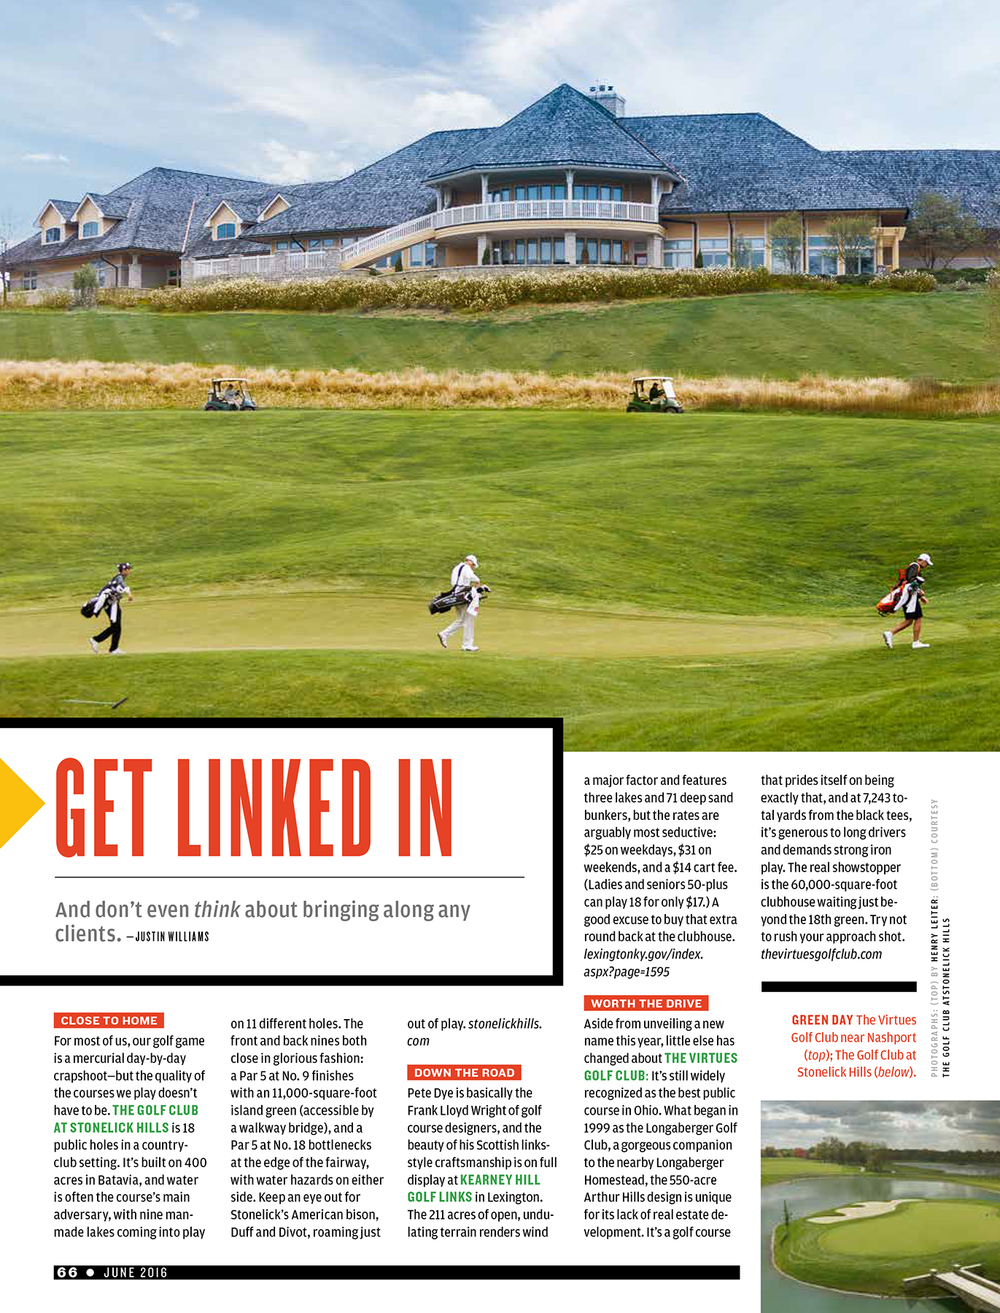 Tear sheet of the article with one of my photos featured at top of the impressive 60,000 square foot clubhouse.